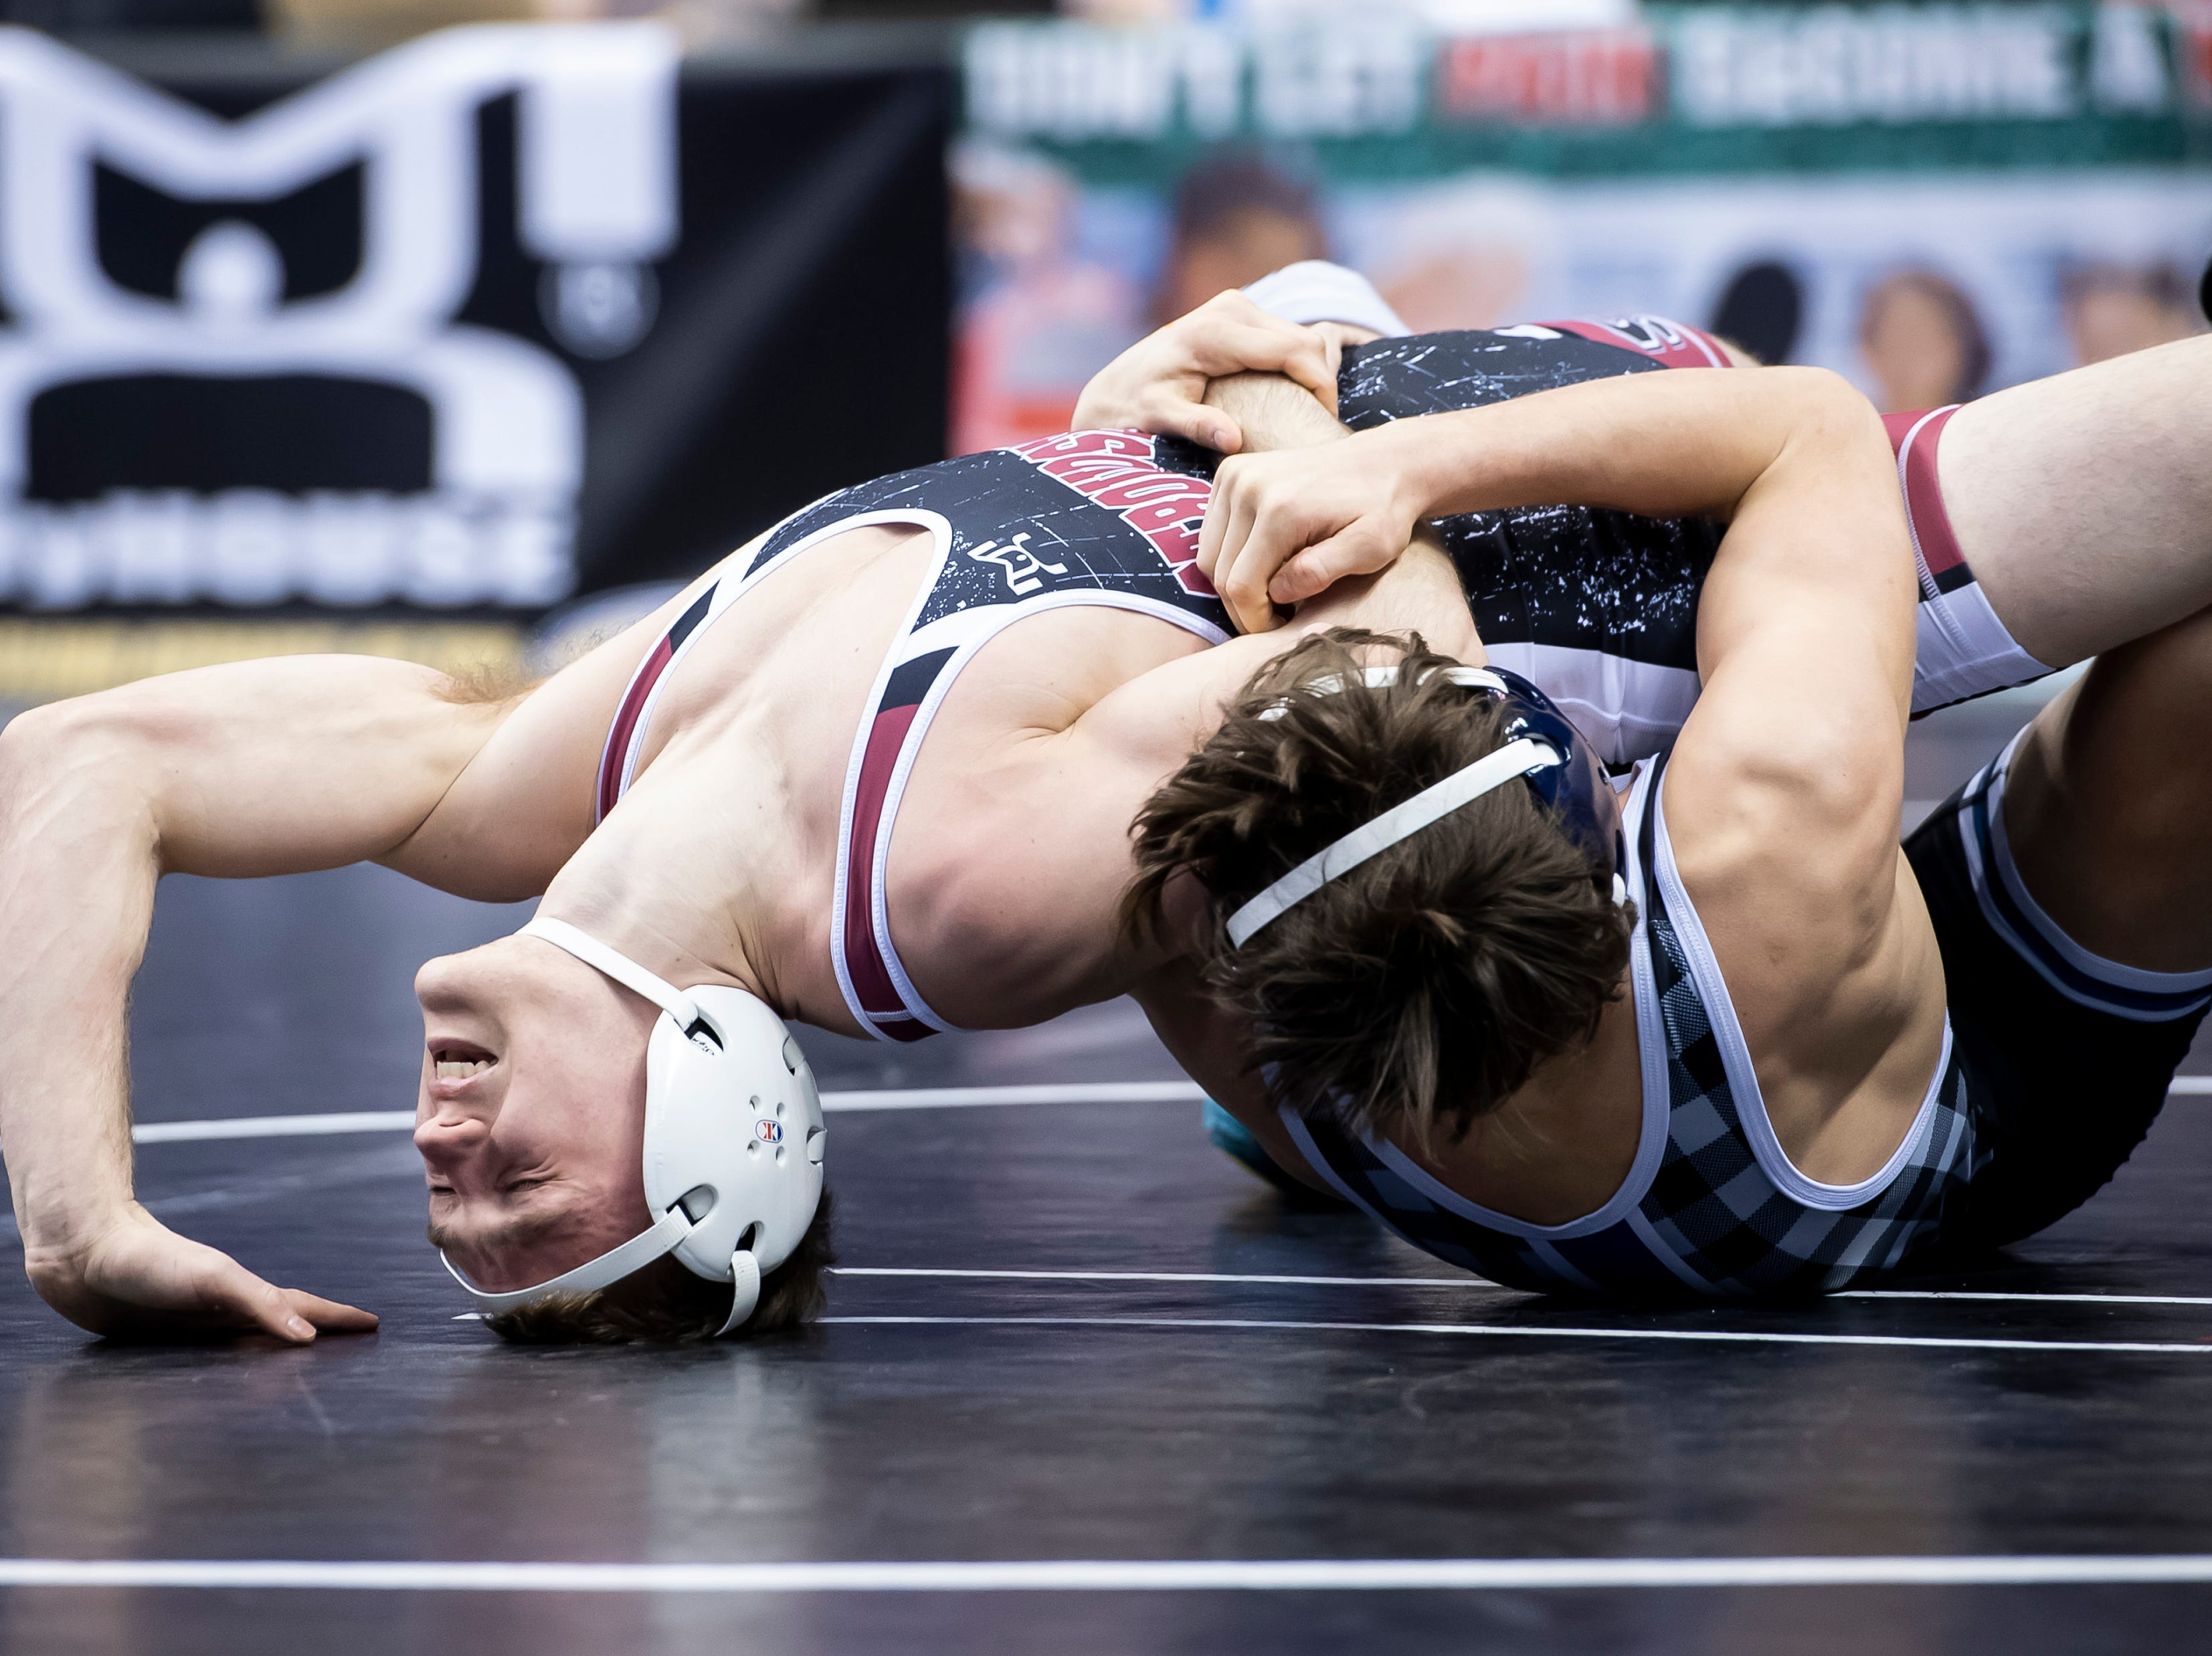 Chambersburg's Cole Grove, bottom, wrestles East Stroudsburg's Patrick Noonan during a 3A 126-pound second round consolation bout at the Giant Center in Hershey Friday, March 8, 2019. Grove won by major decision 13-4.